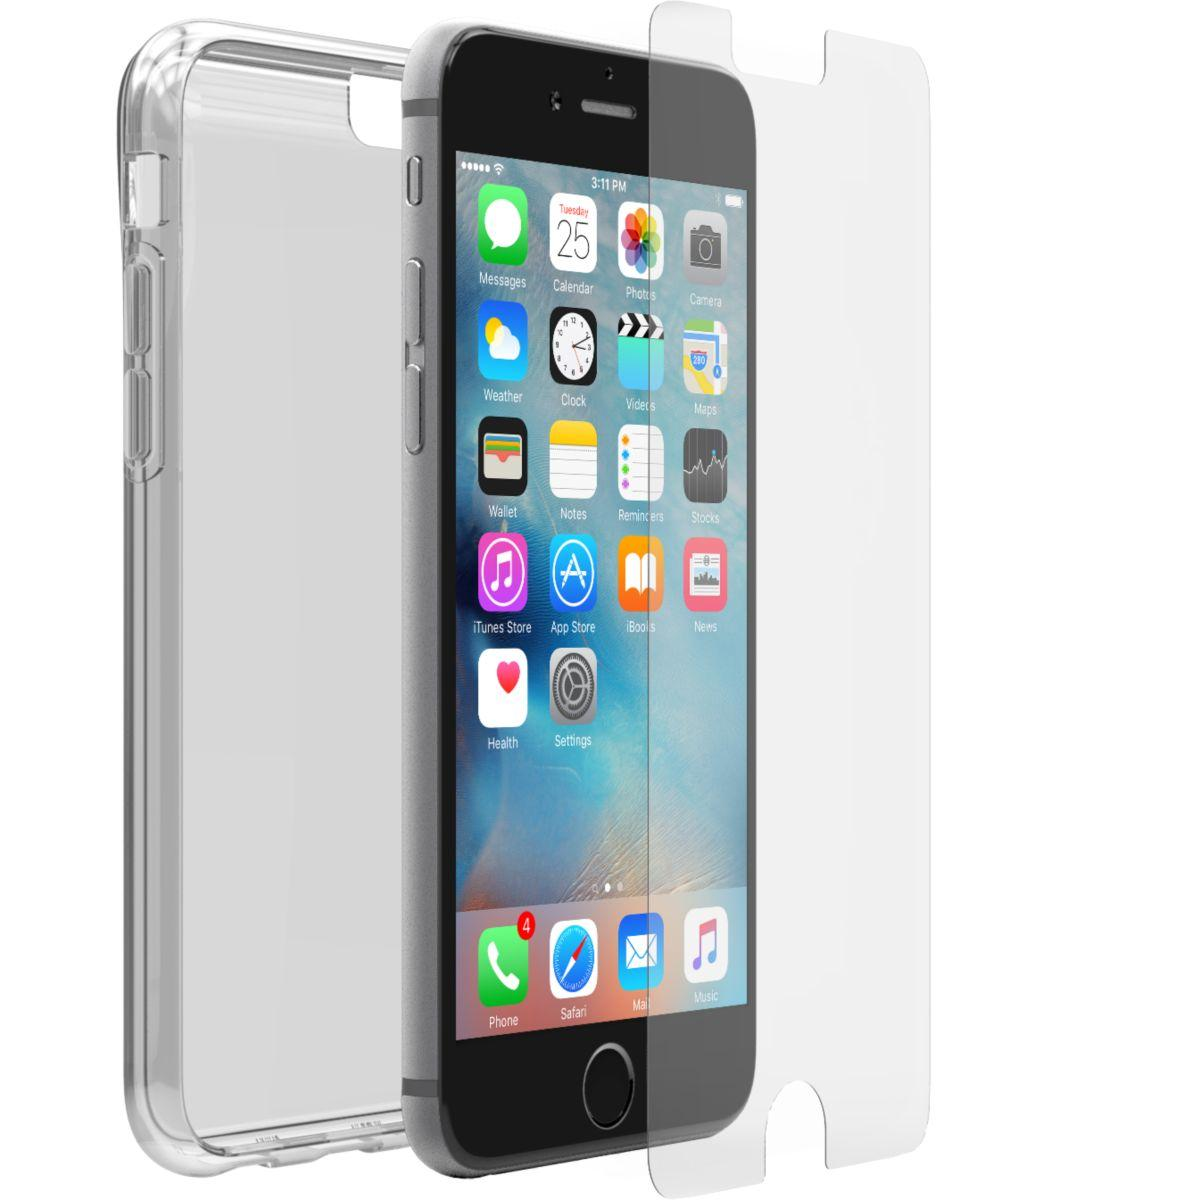 Coque + prot�ge �cran otterbox iphone 7/8 clear skin+ alpha glass - livraison offerte : code liv (photo)